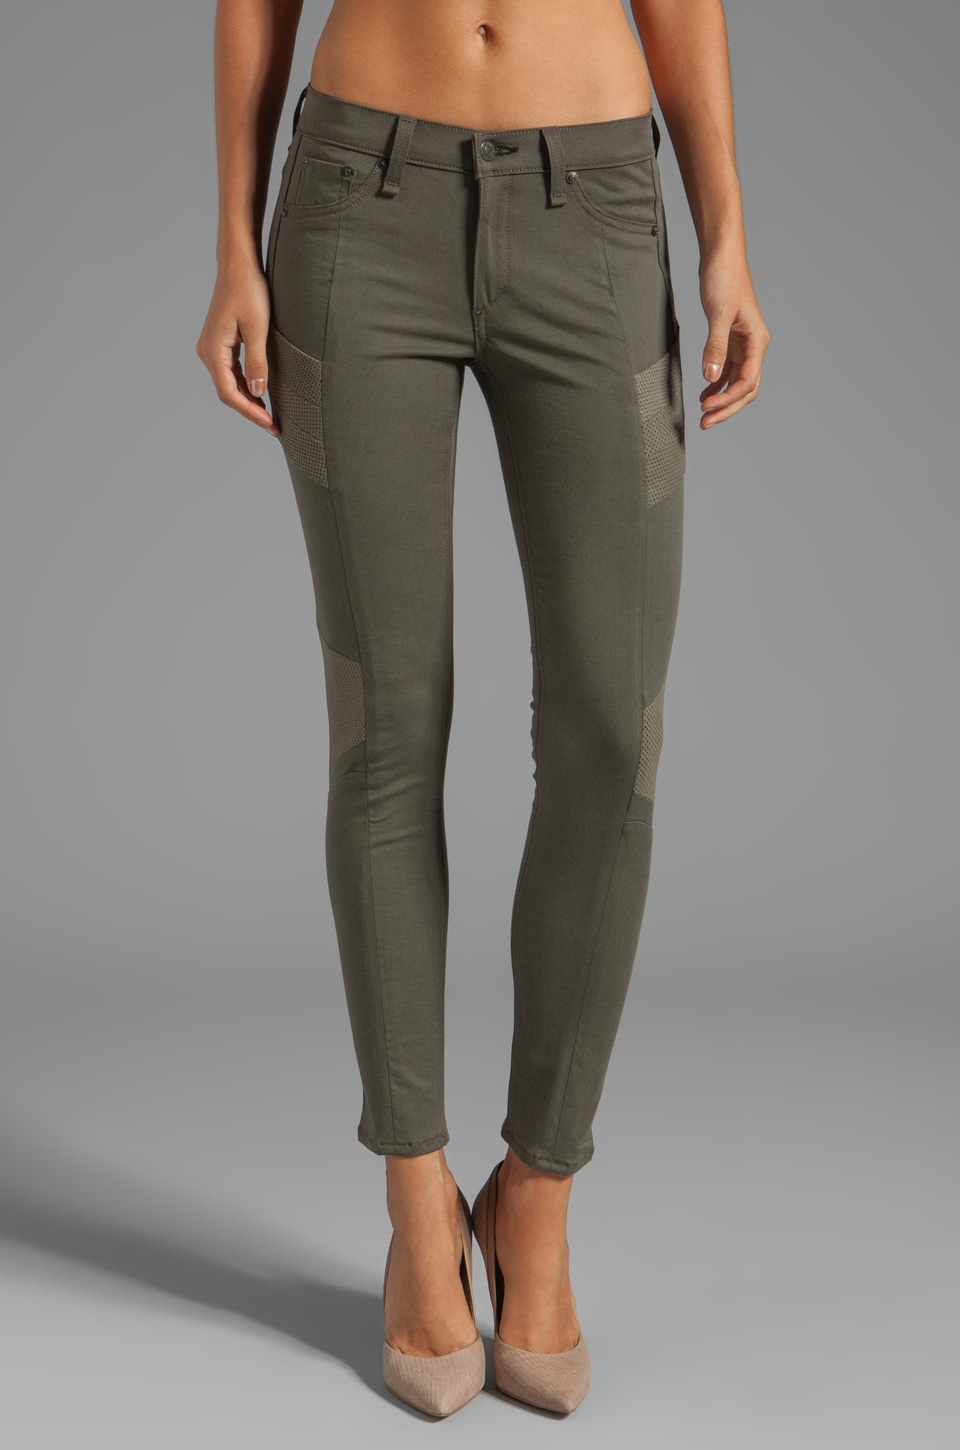 rag & bone/JEAN The Halifax Legging in Army